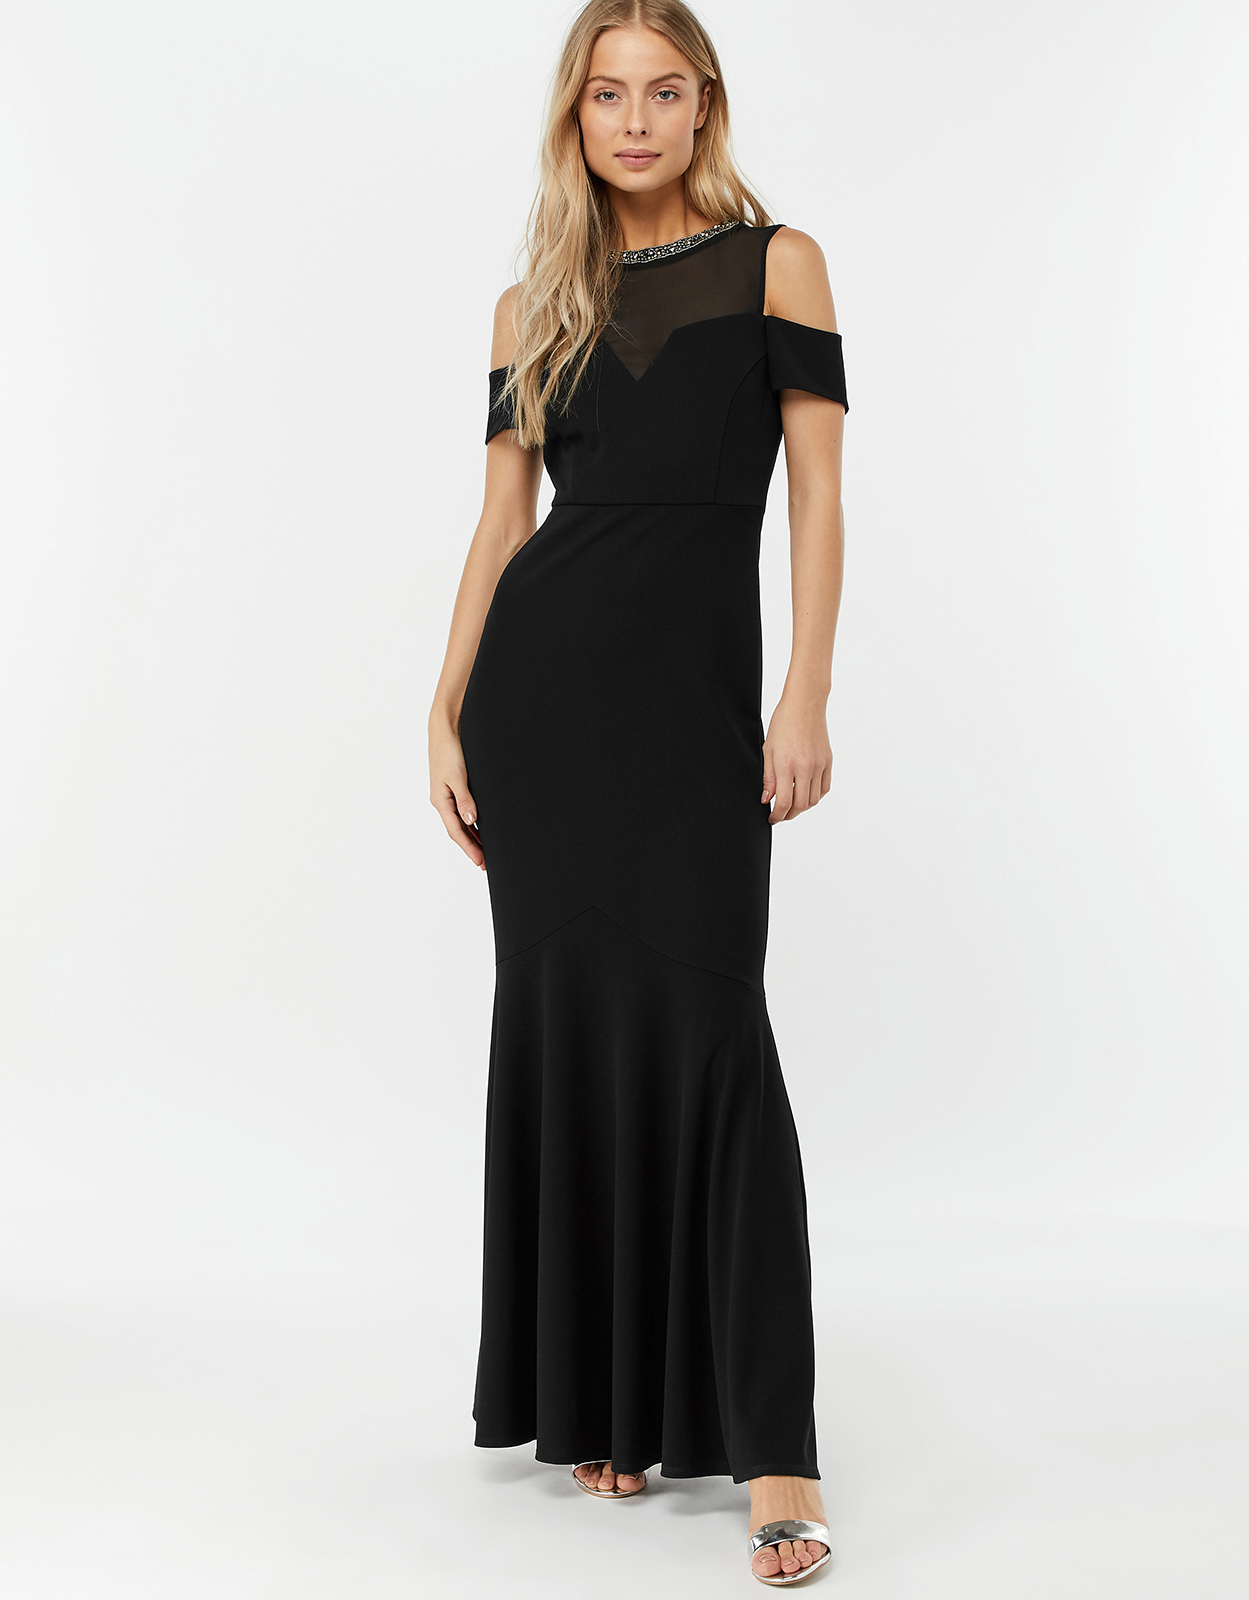 Monsoon Matilda Crepe Shorter Length Maxi Dress